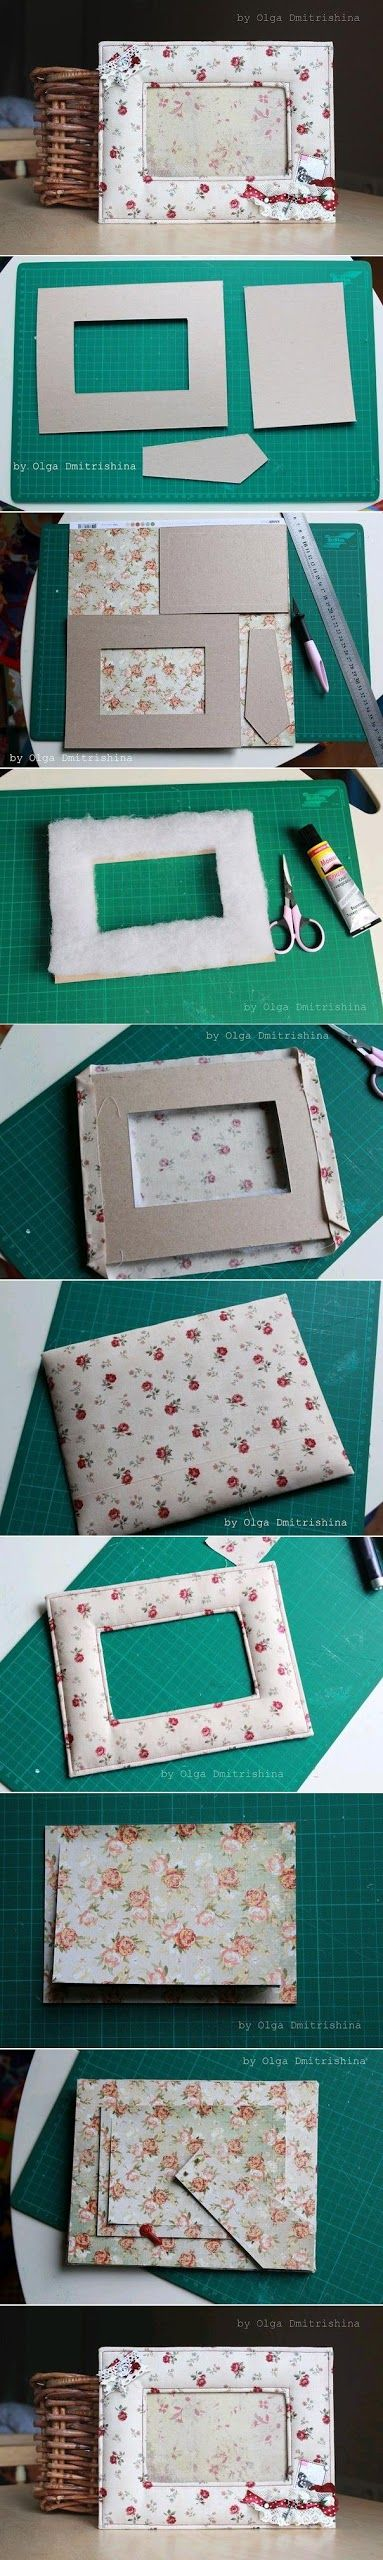 Easy Way To Make a Picture Frame / I have been looking for this for a very long time